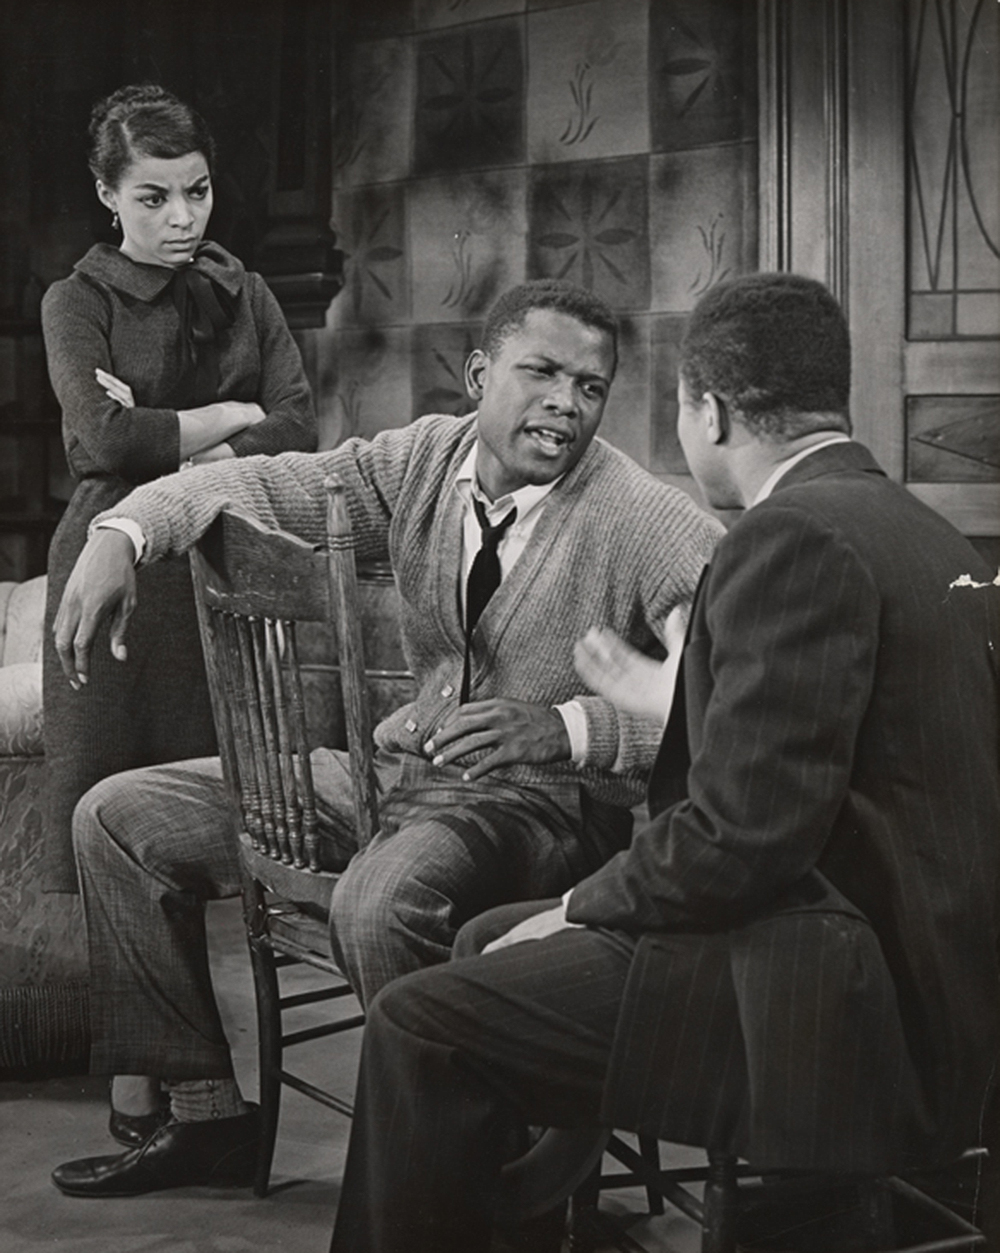 Ruby Dee, Sidney Poitier, and unidentified actor in the stage production of A Raisin in the Sun, 1959. The New York Public Library, Friedman-Abeles photograph collection.